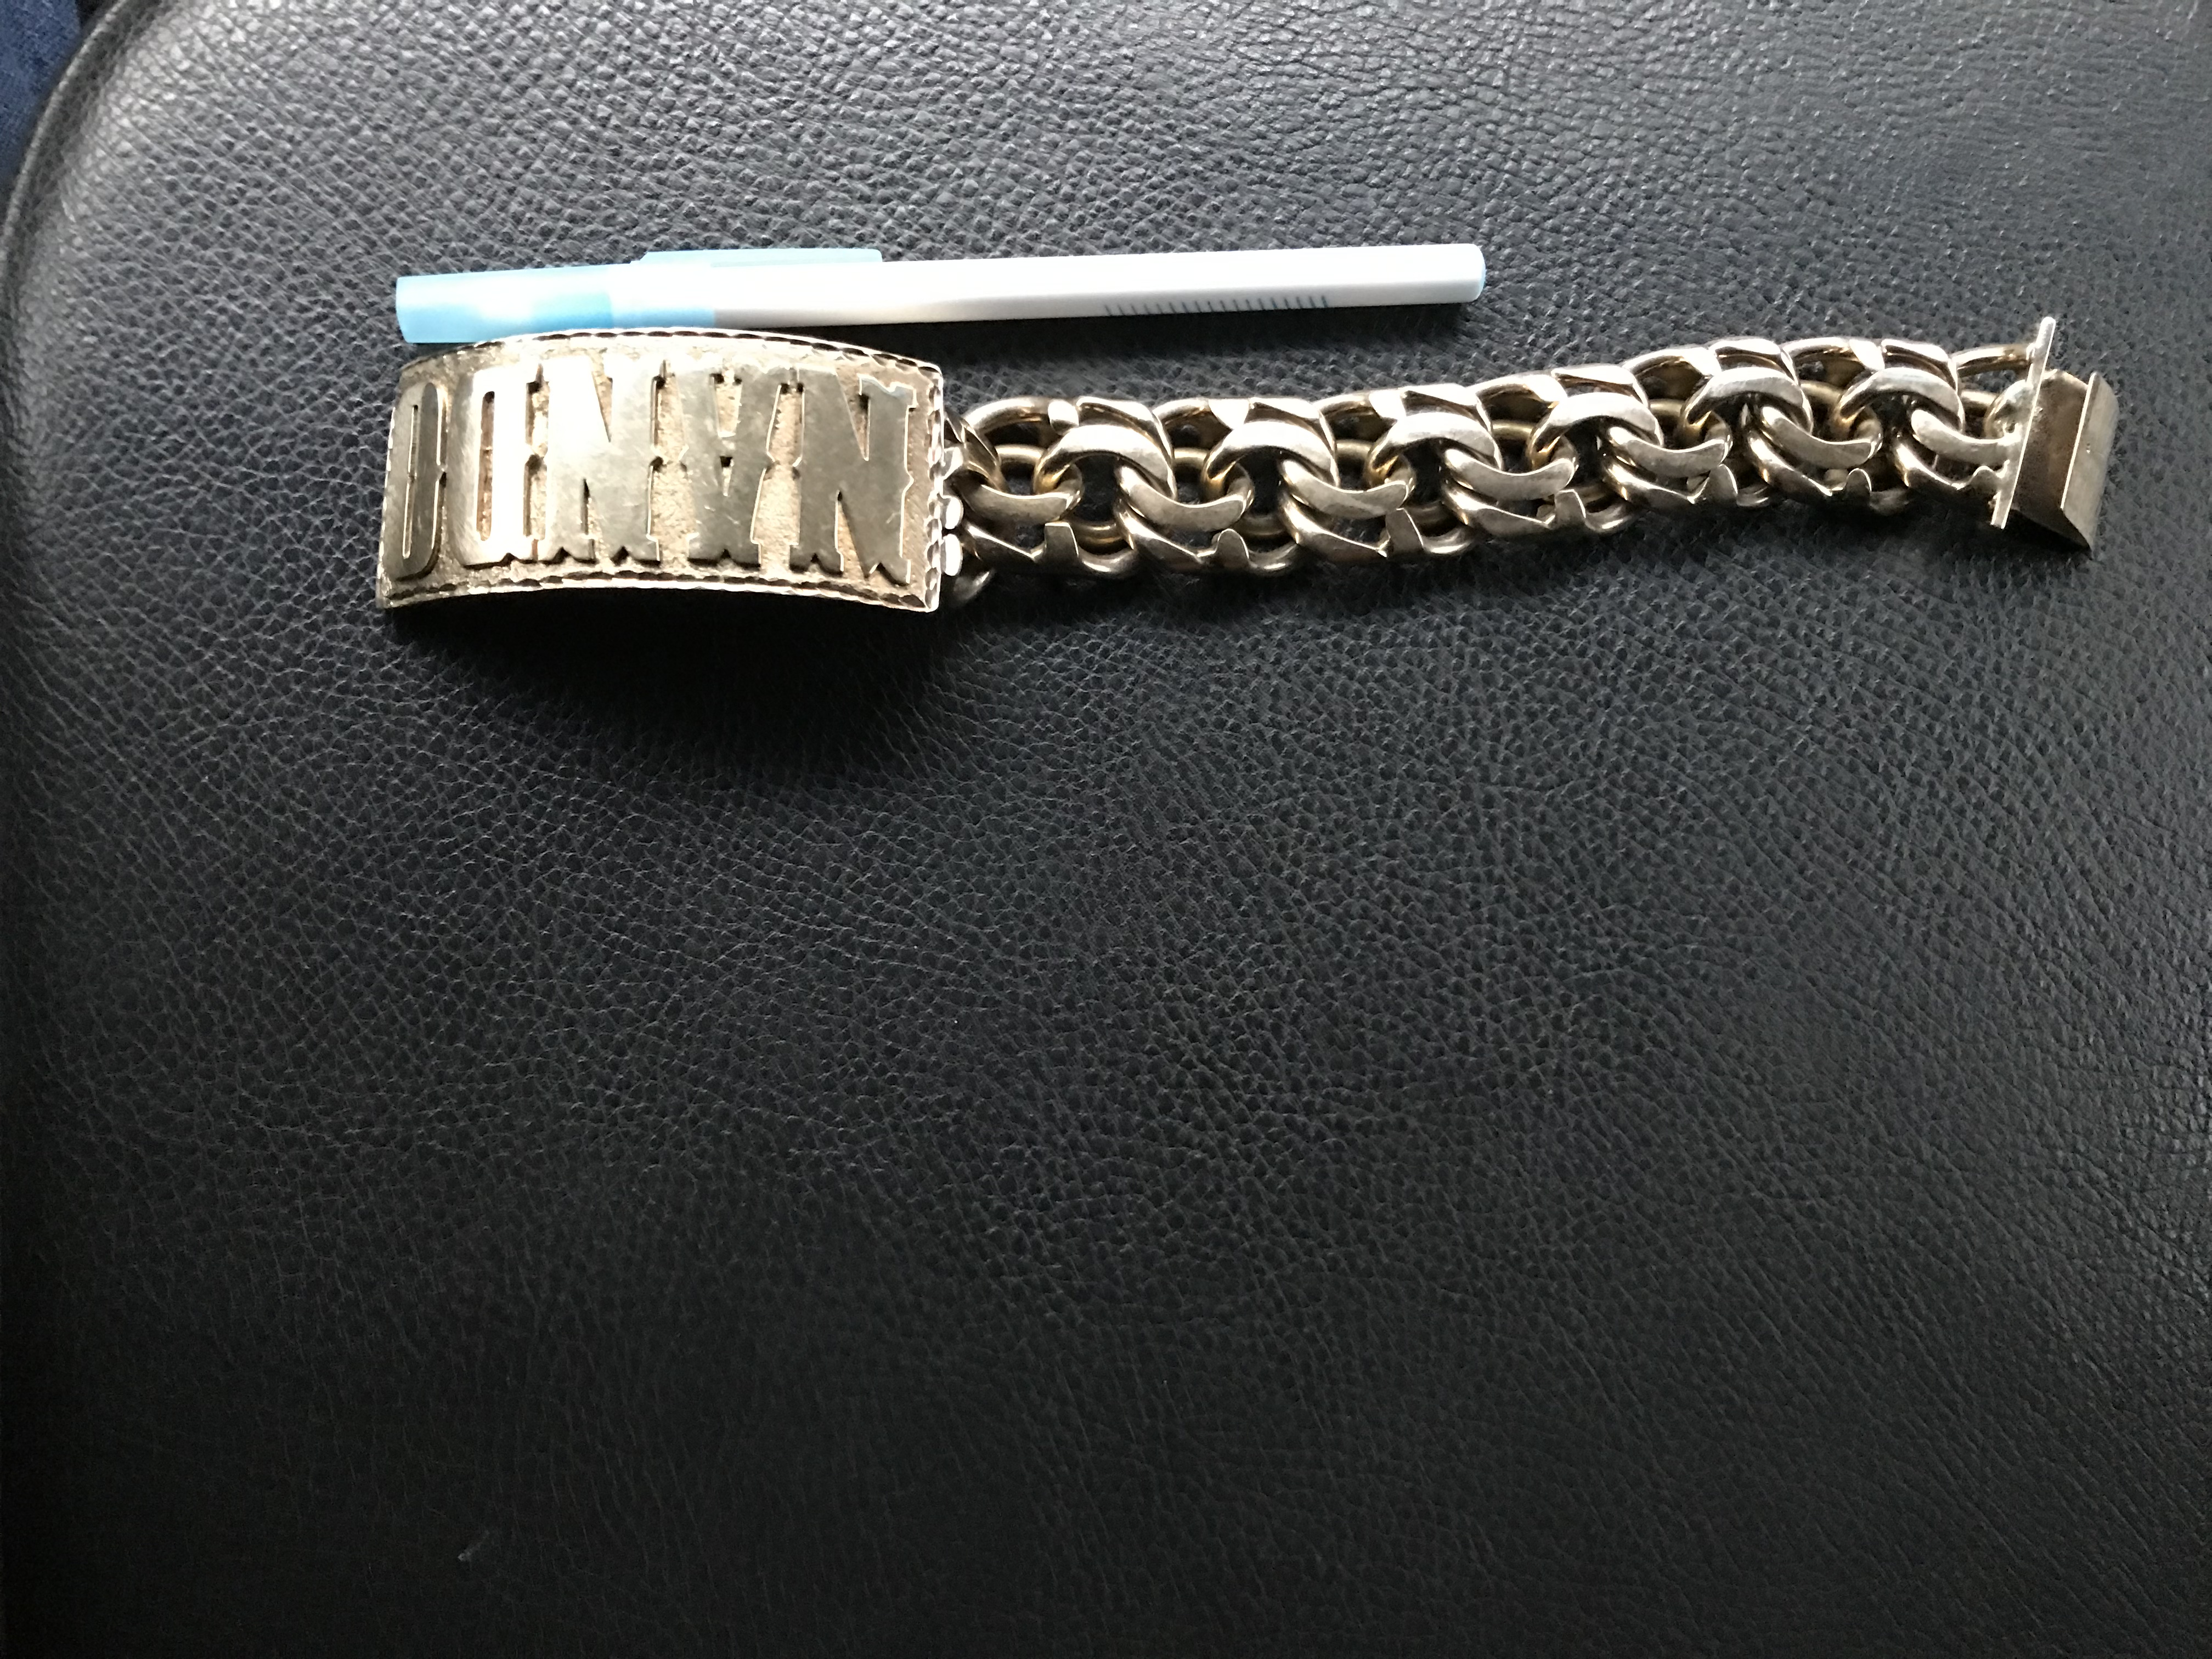 cf61581ec Tennis bracelet picture Apr-30-2019 Country: United States For Sale ...